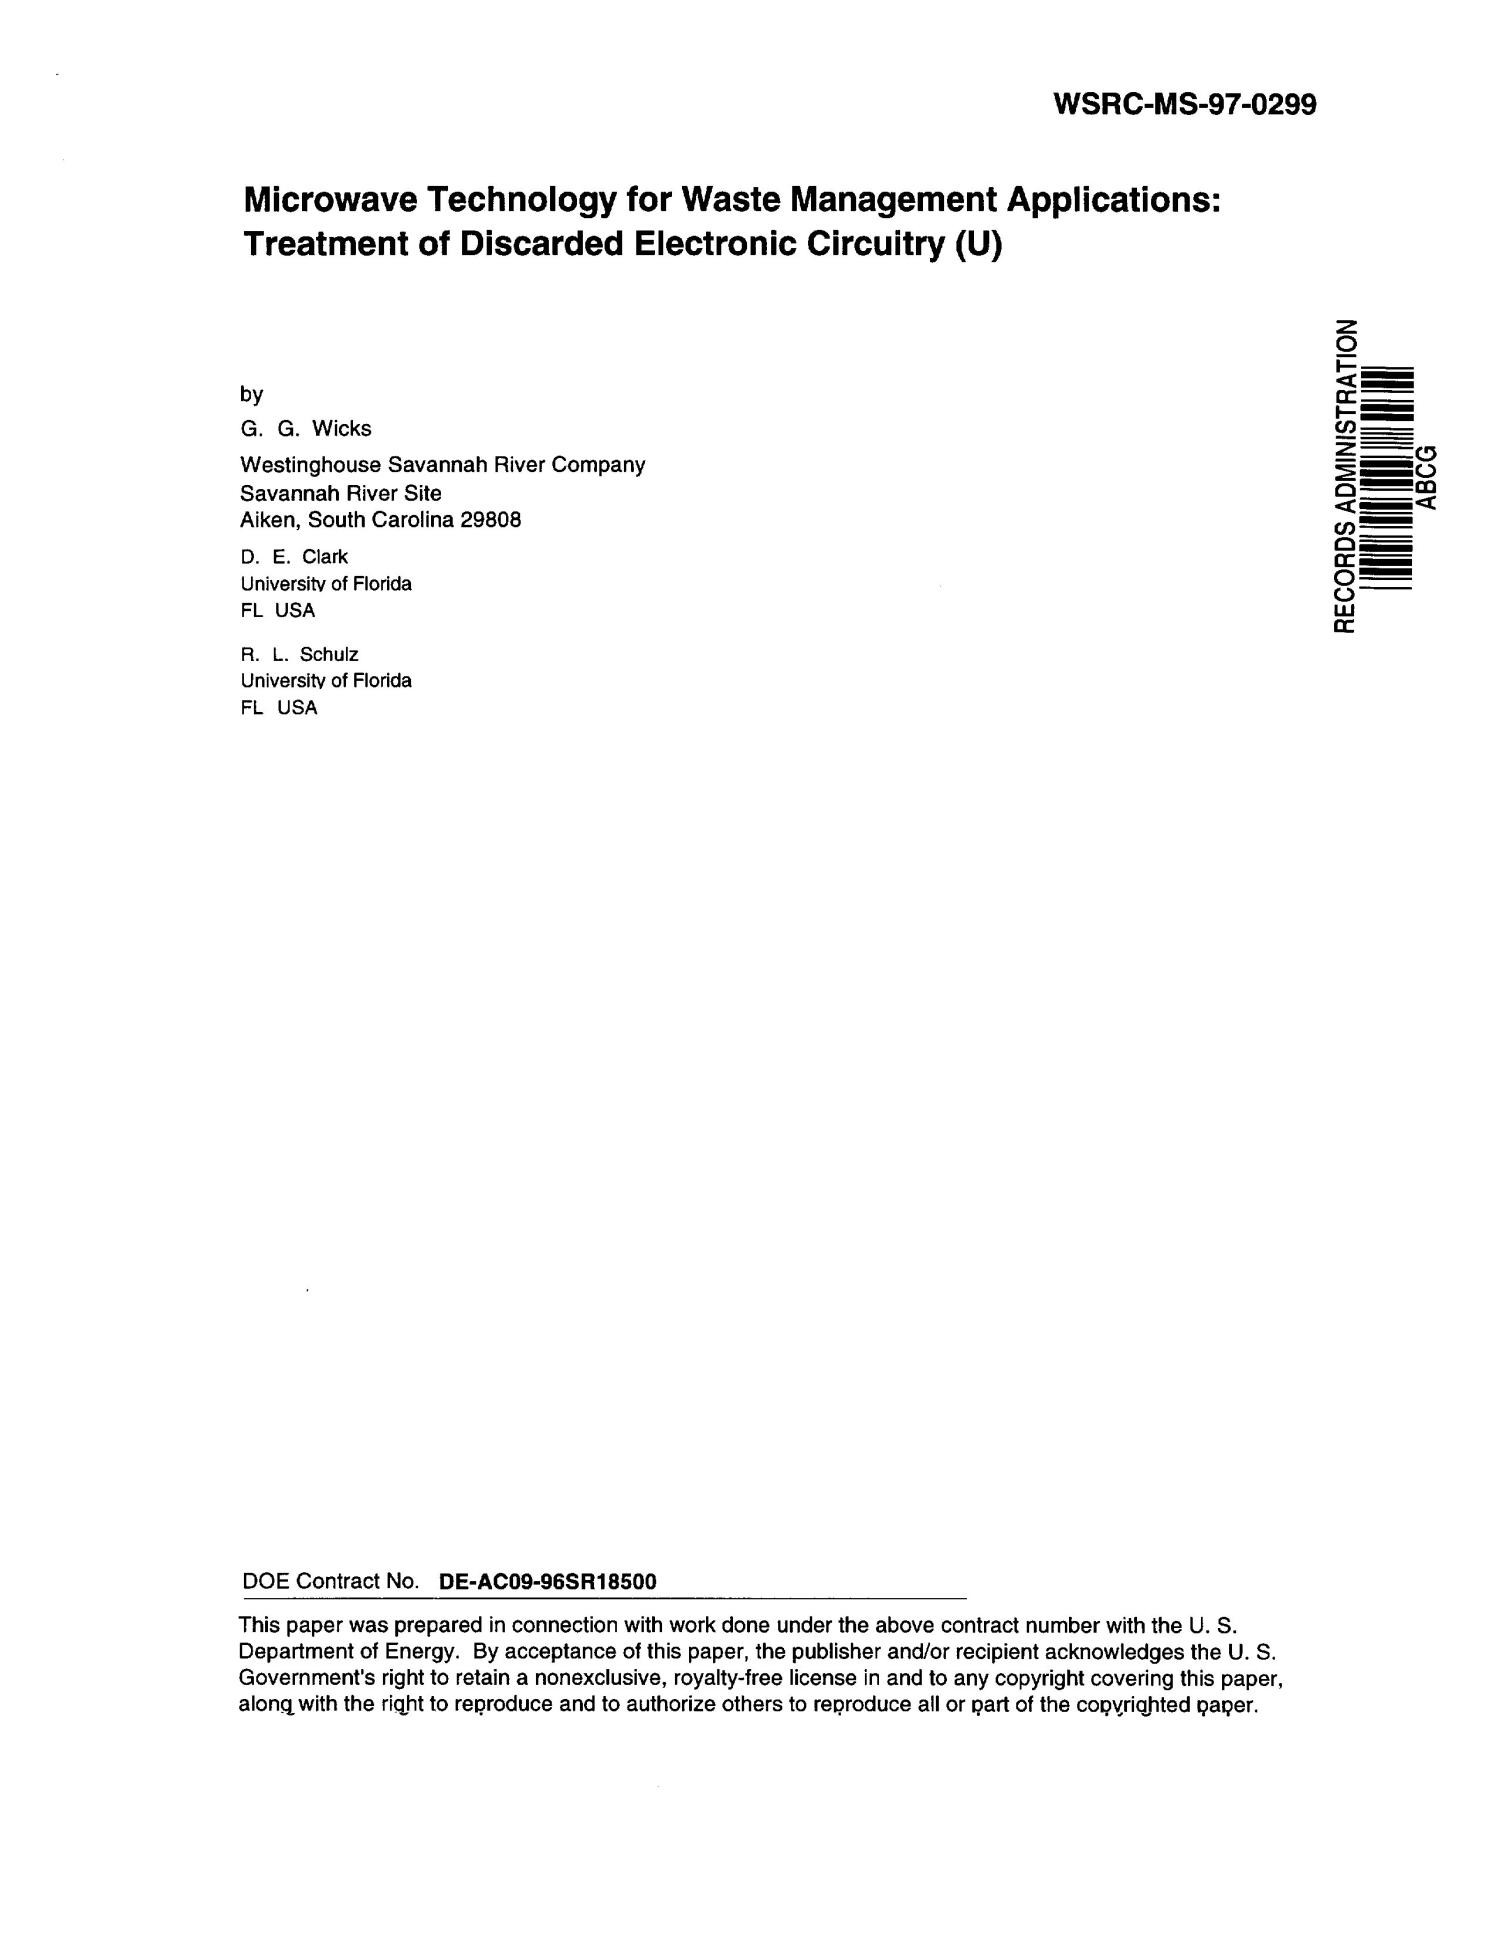 Microwave Technology For Waste Management Applications Treatment Of Electronic Circuits Explained Discarded Circuitry Digital Library